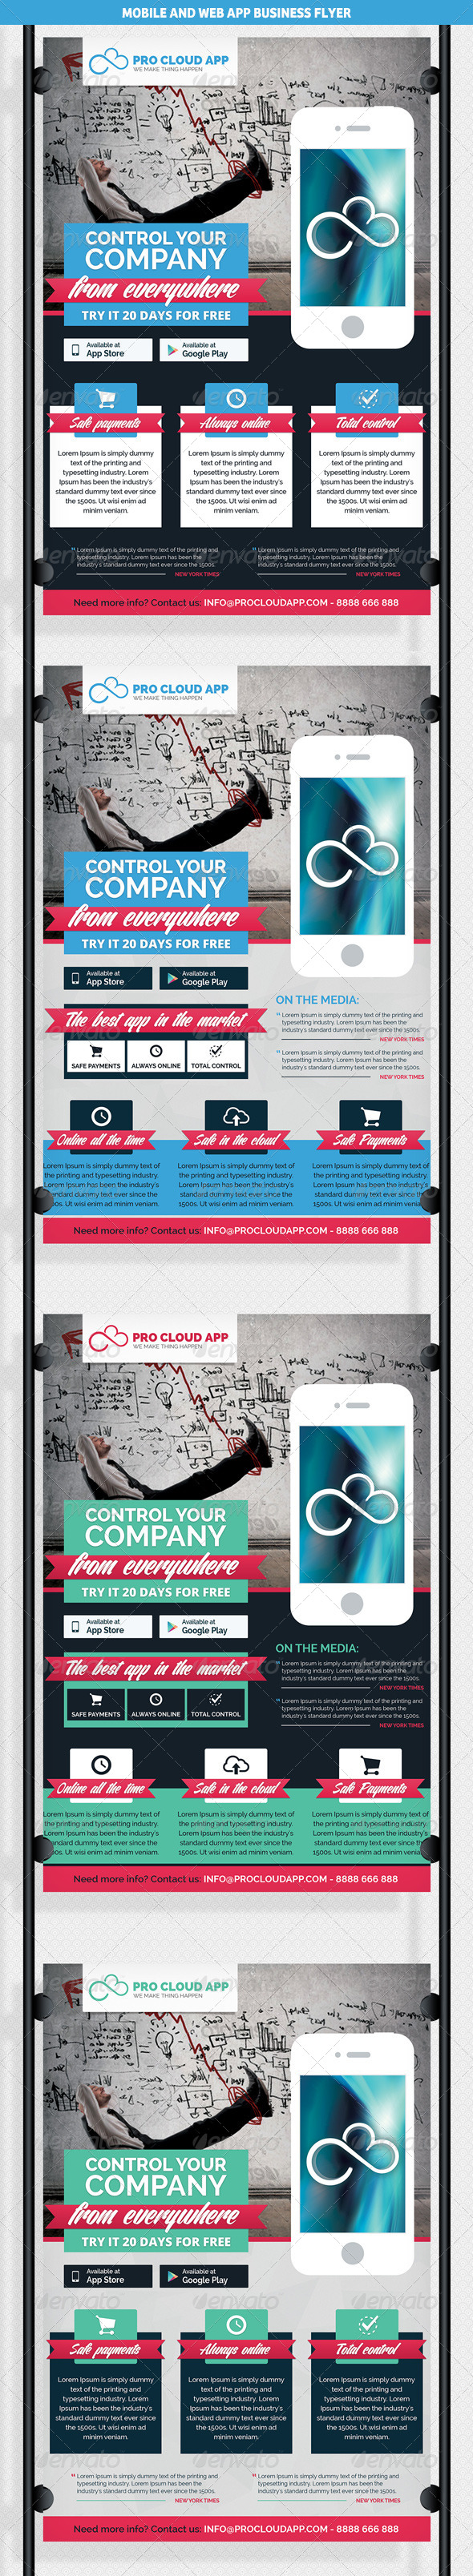 Mobile & Web App Business Flyer - Commerce Flyers